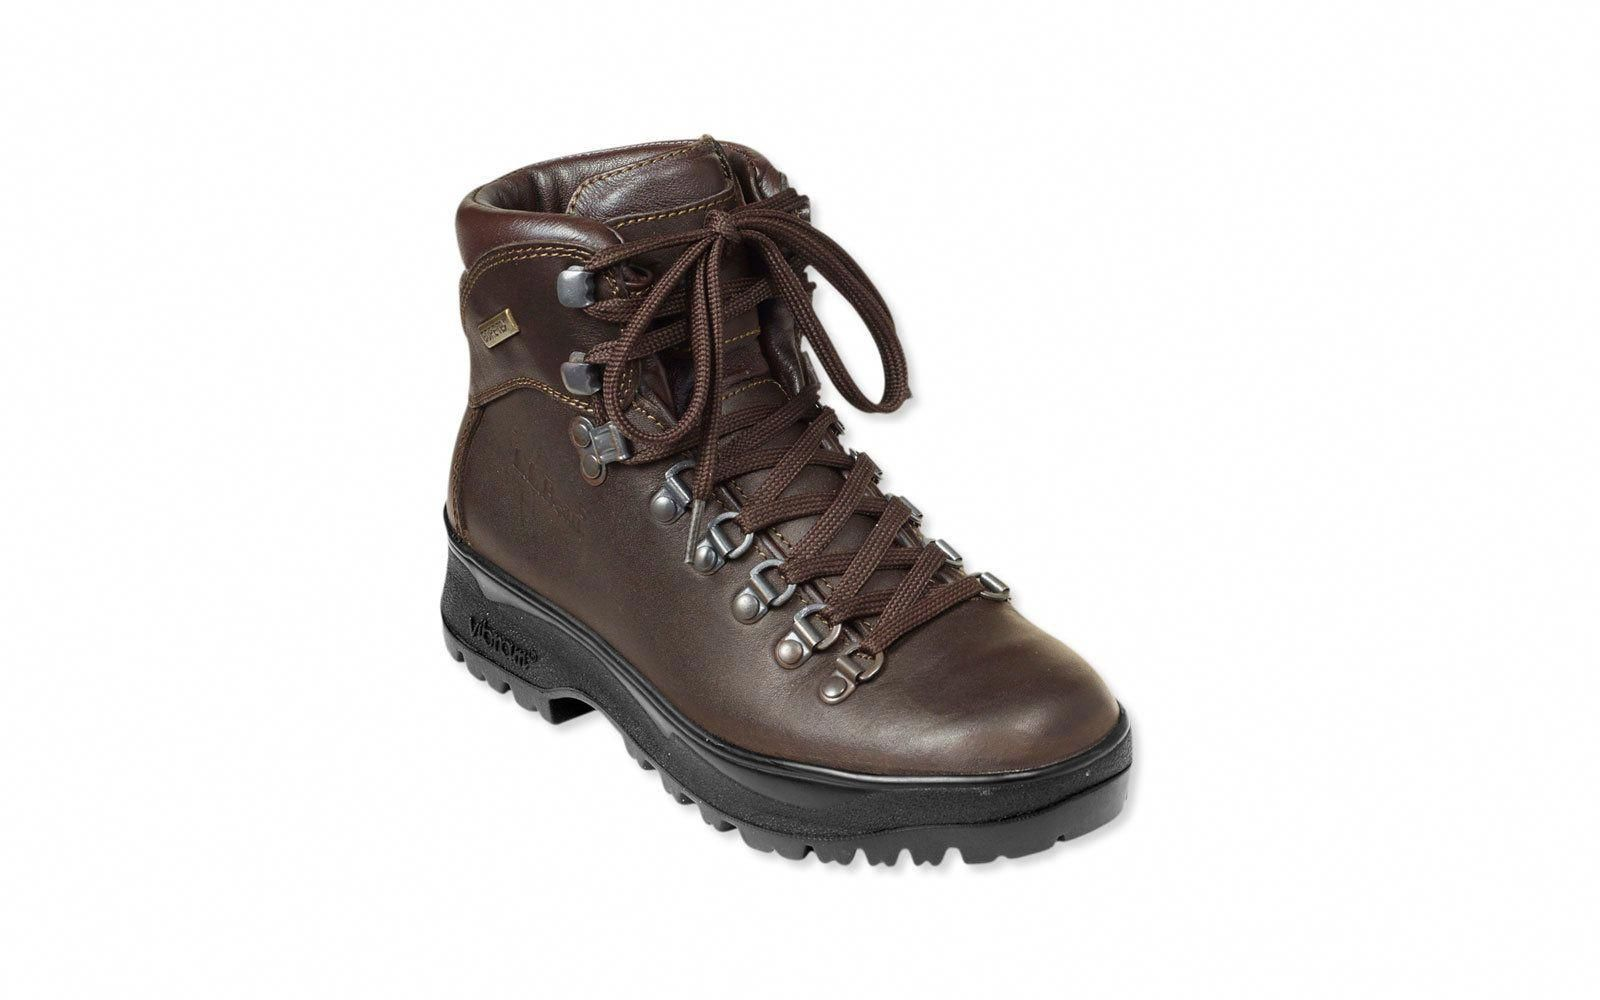 28e2a07e431 L.L.Bean Women's Gore-Tex Cresta Hiking Boots | These hiking shoes ...